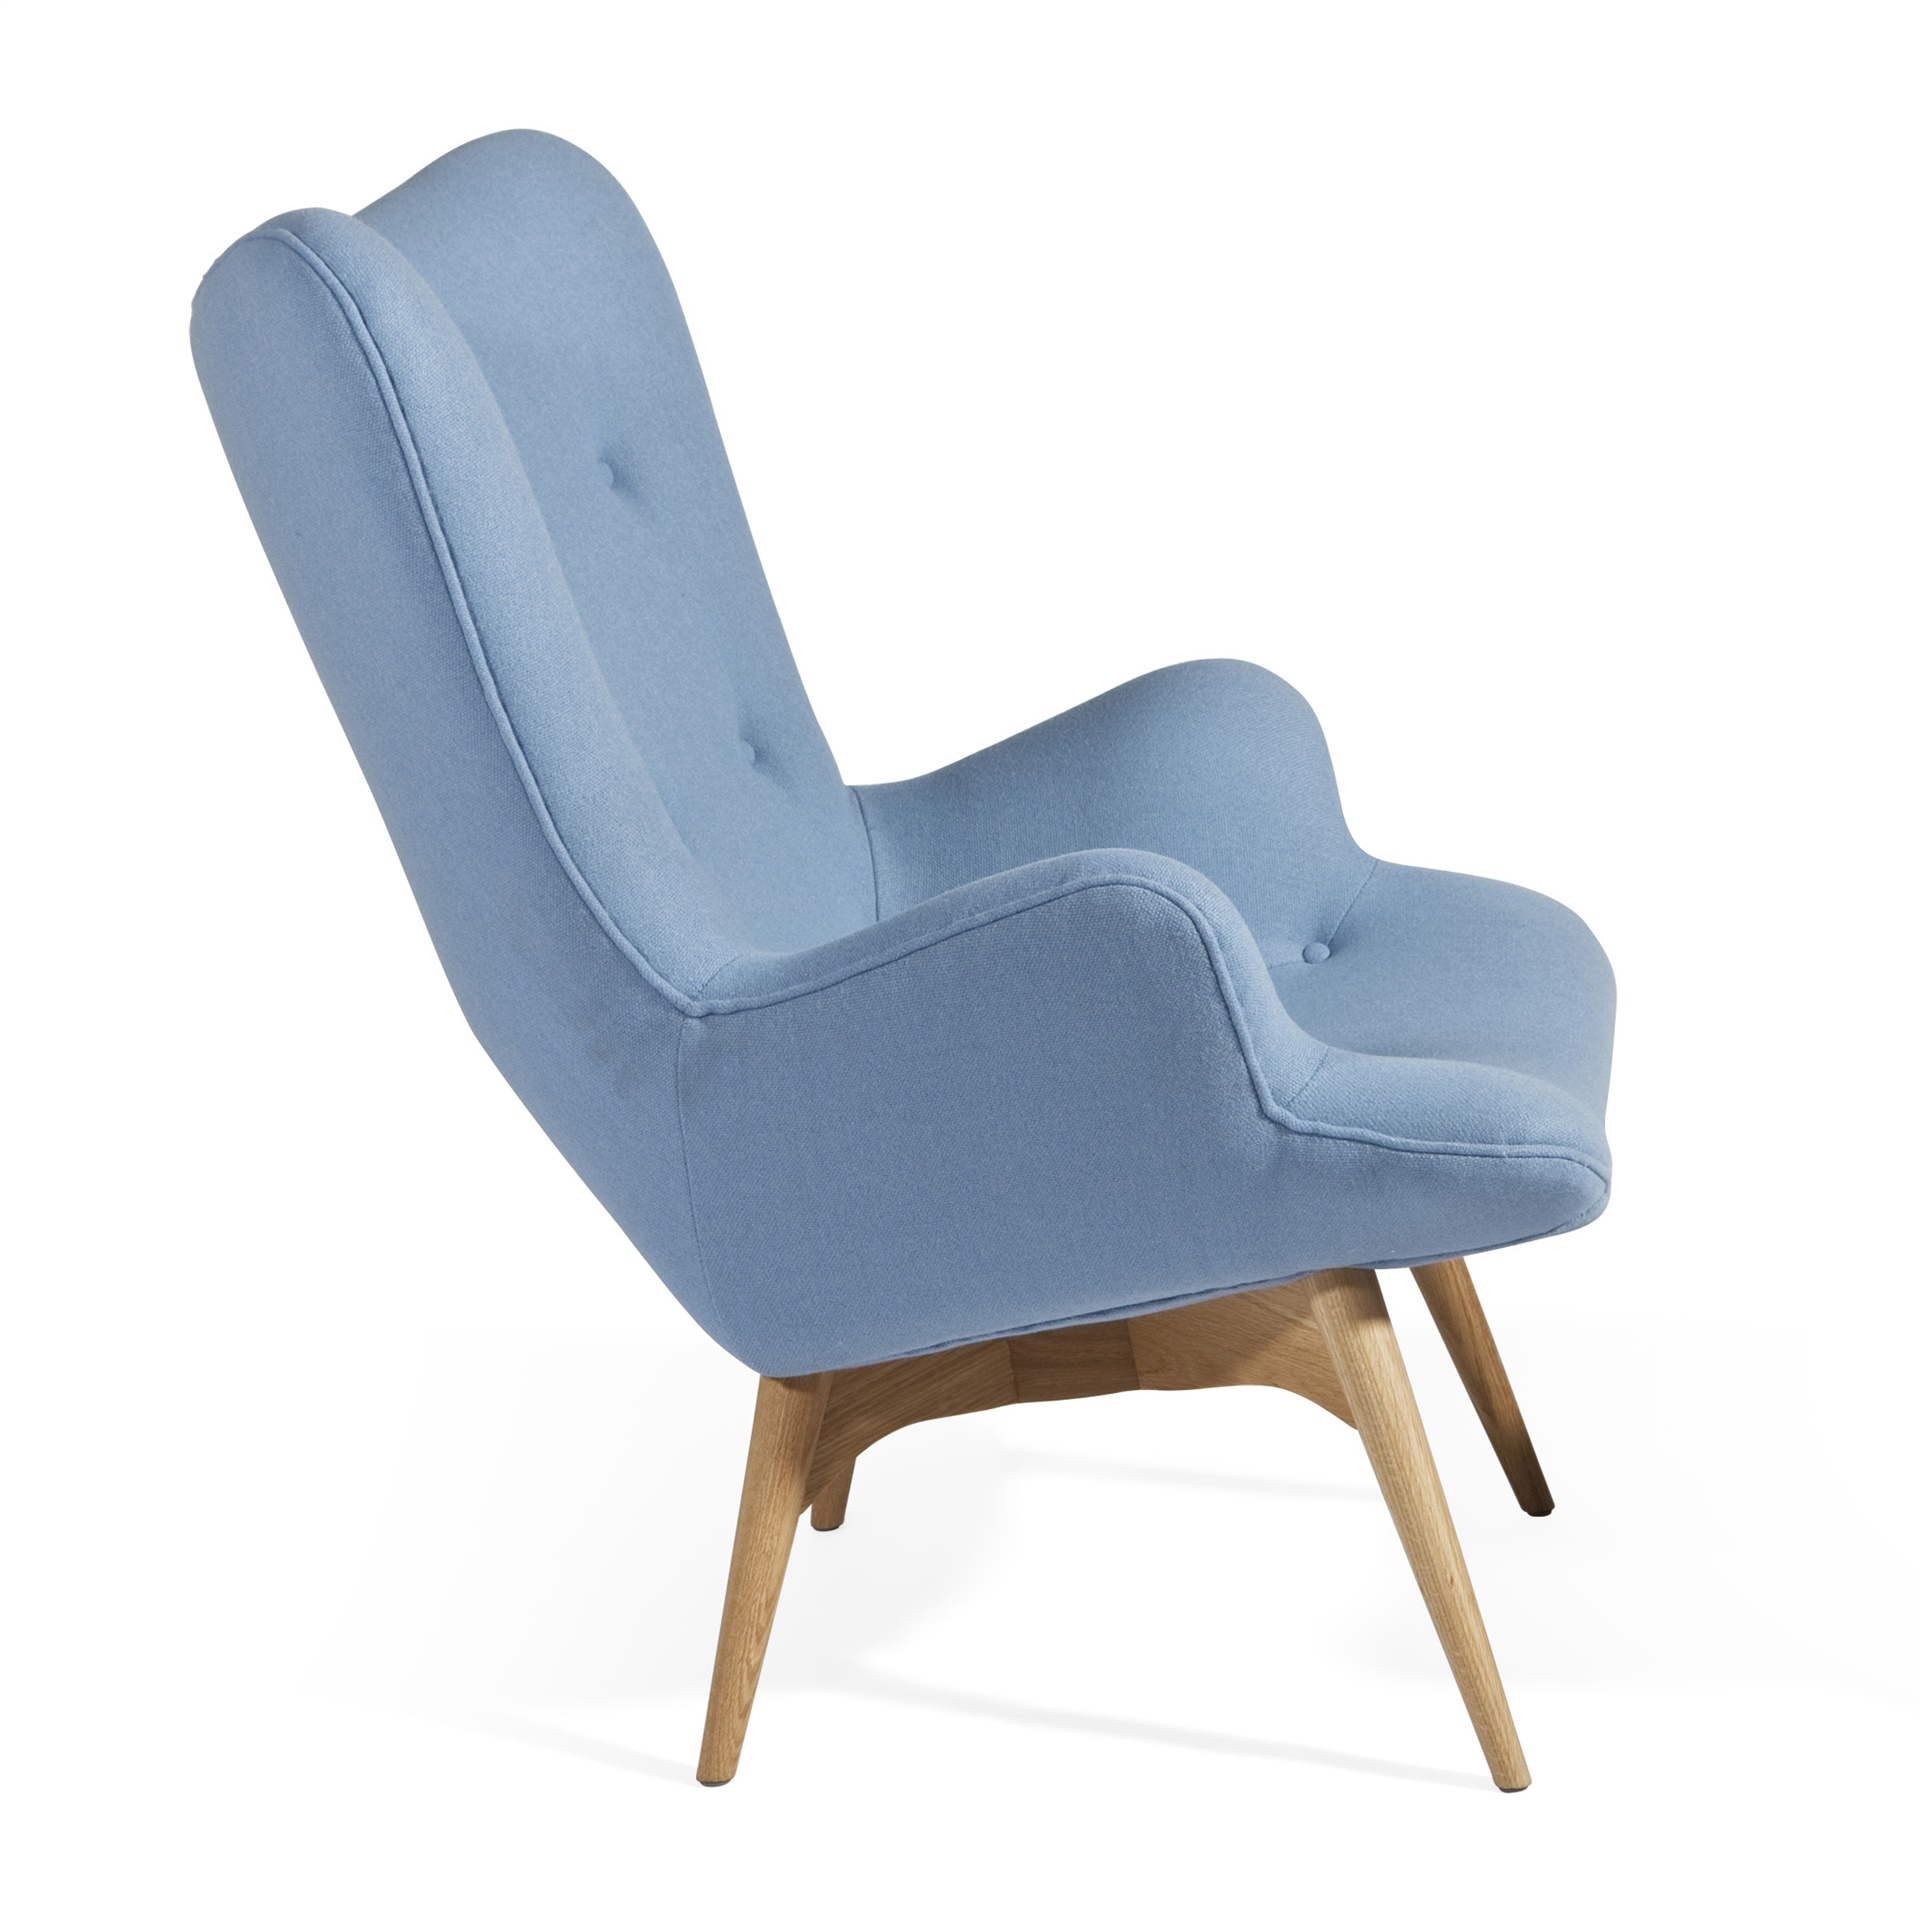 Enjoyable Grant Featherston Contour Lounge Chair Machost Co Dining Chair Design Ideas Machostcouk